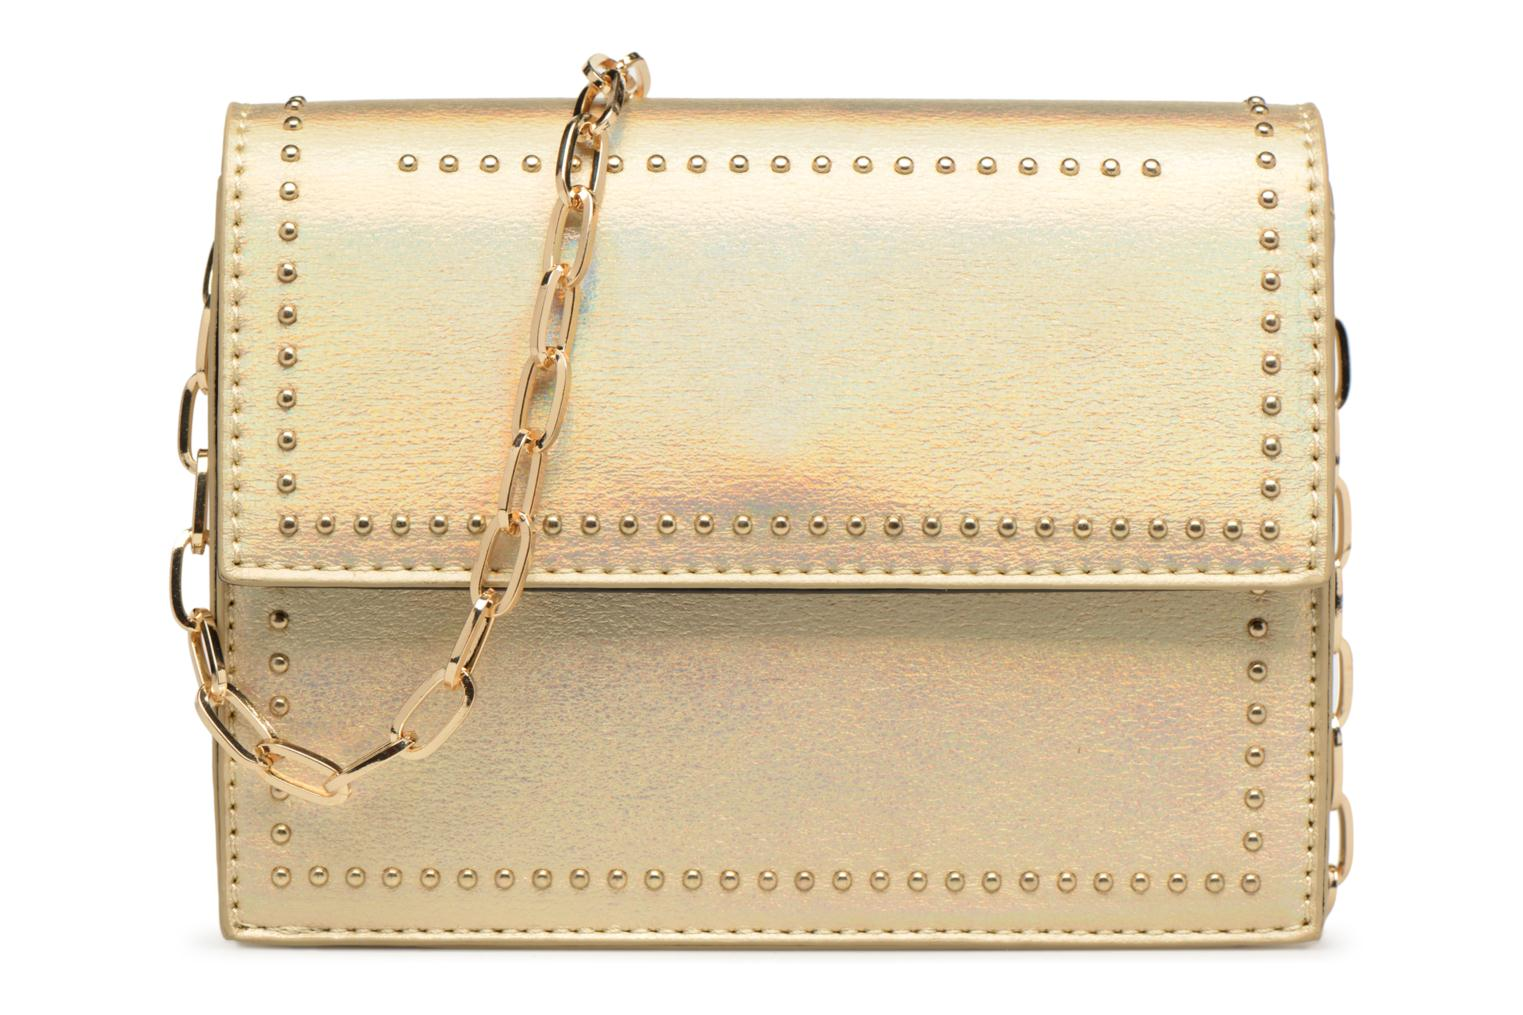 chainstrap Street Level crossbody Gold Mettalic nnpv7R